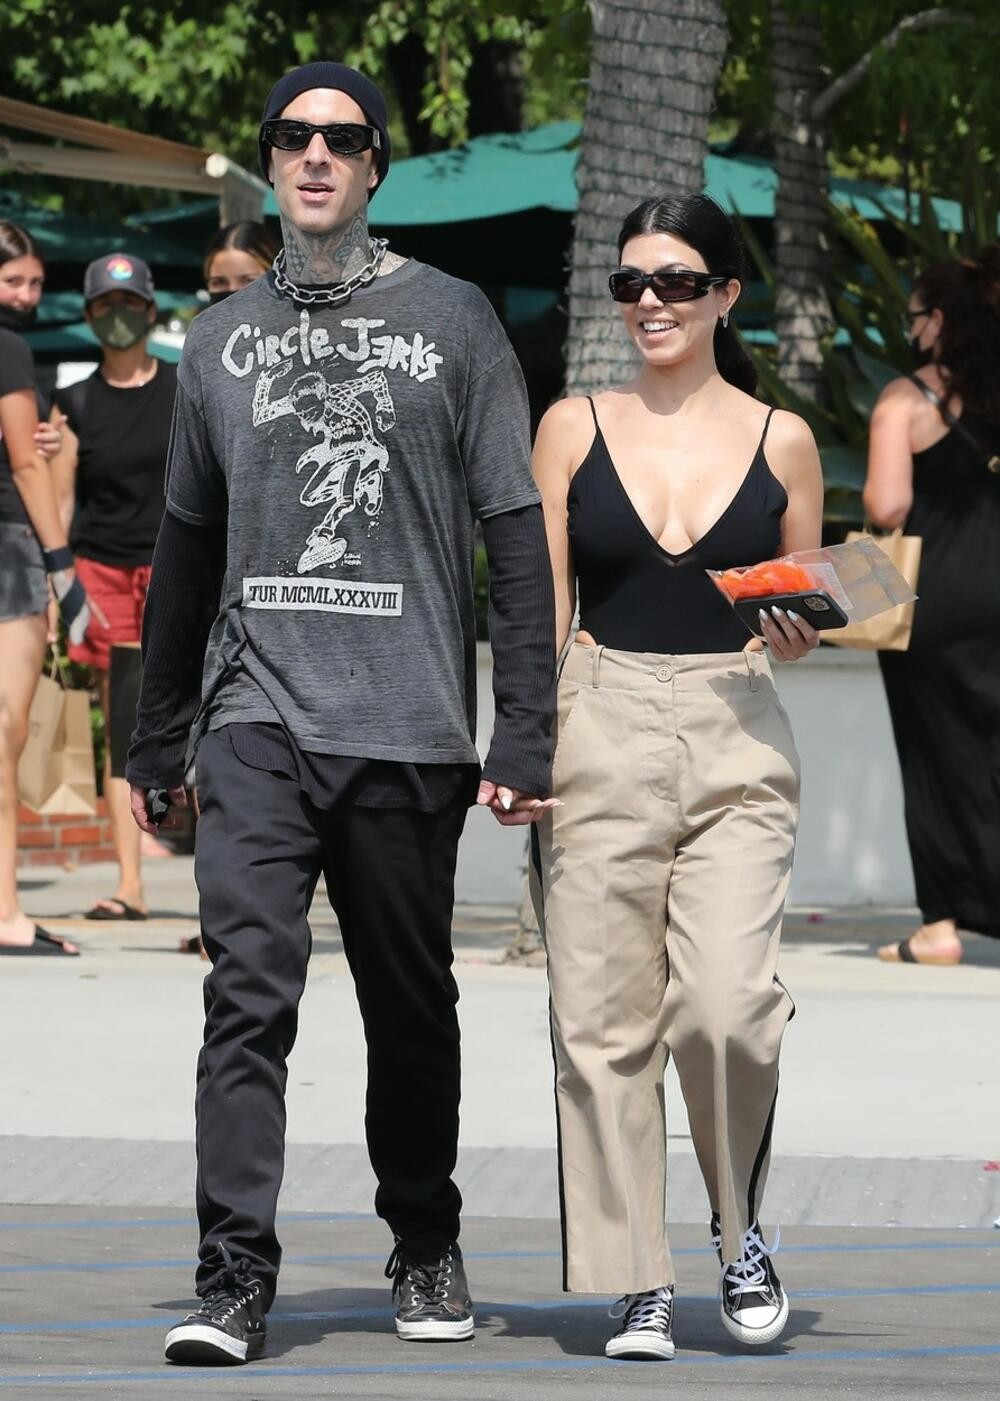 More or less bizarre: Kourtney Kardashian shocked the world with the way she shows love for her new boyfriend